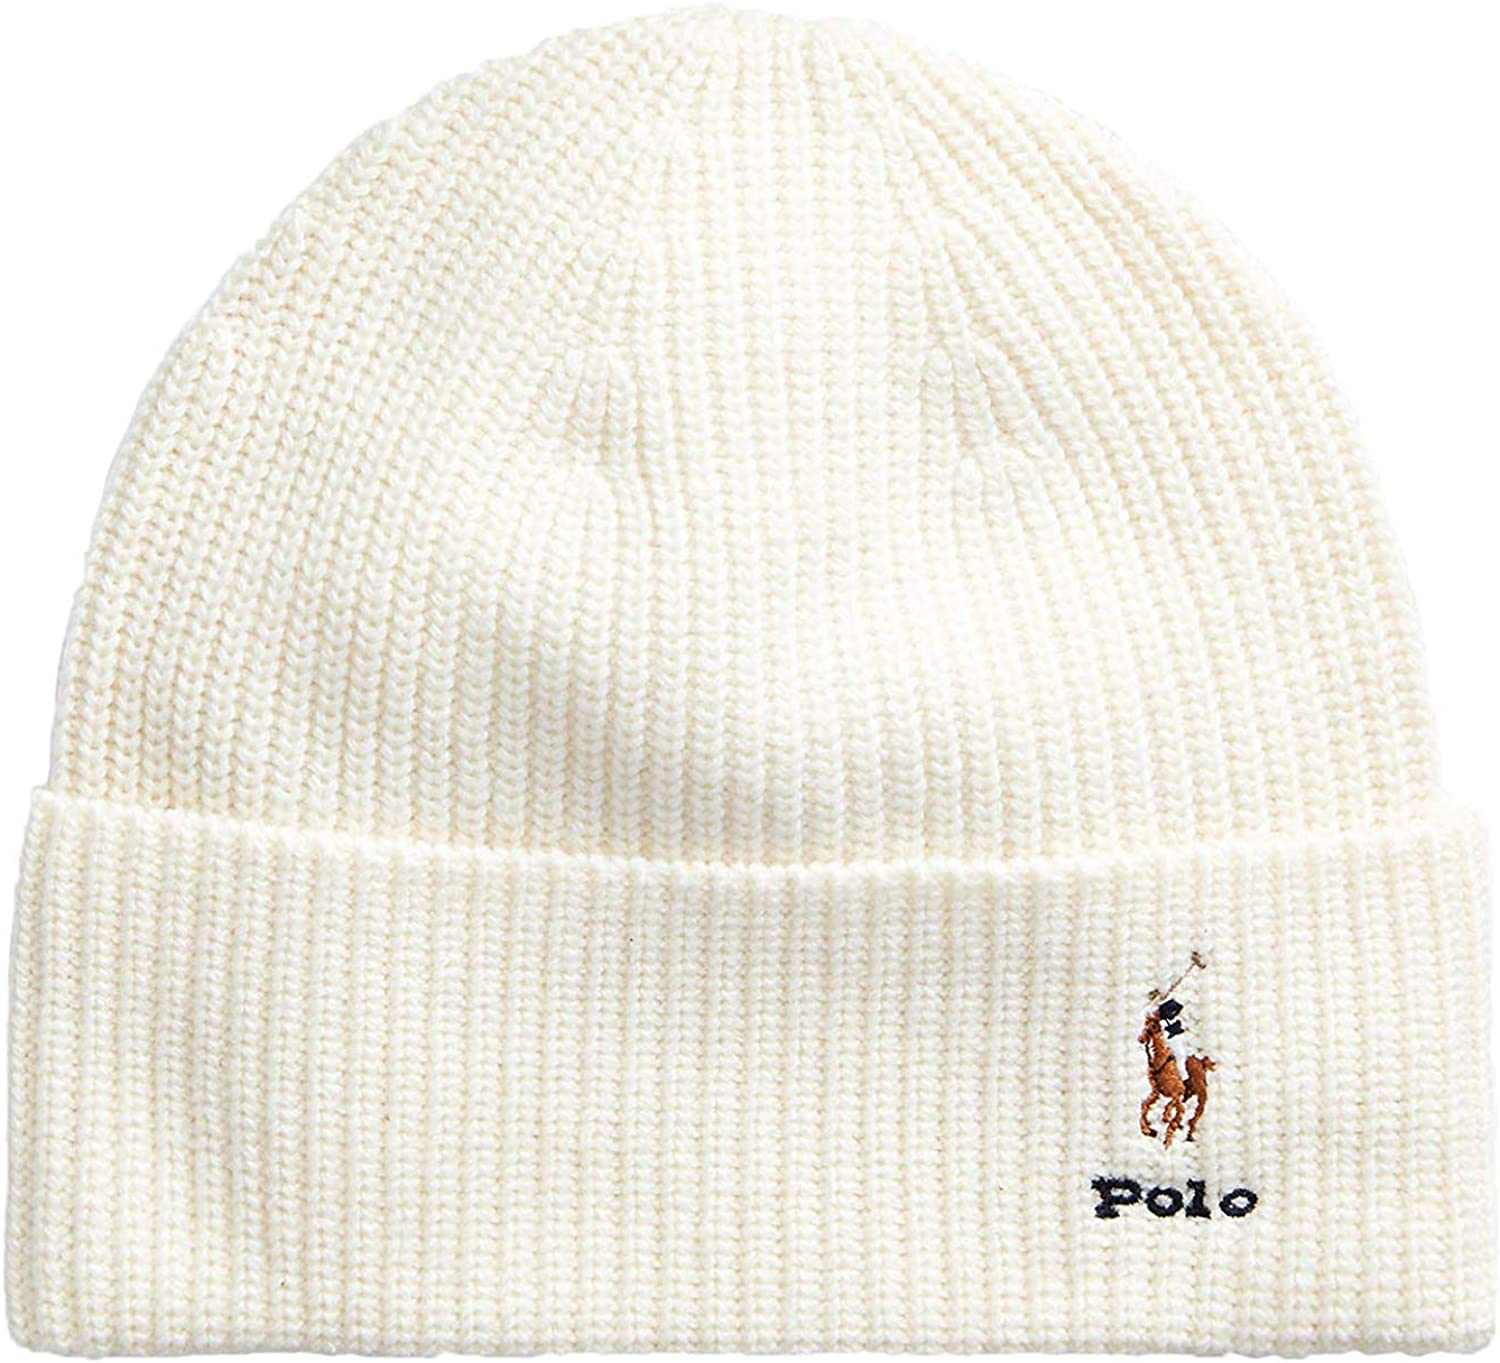 Polo Ralph Lauren – Gorro de Lana, Color Crema: Amazon.es: Ropa y ...